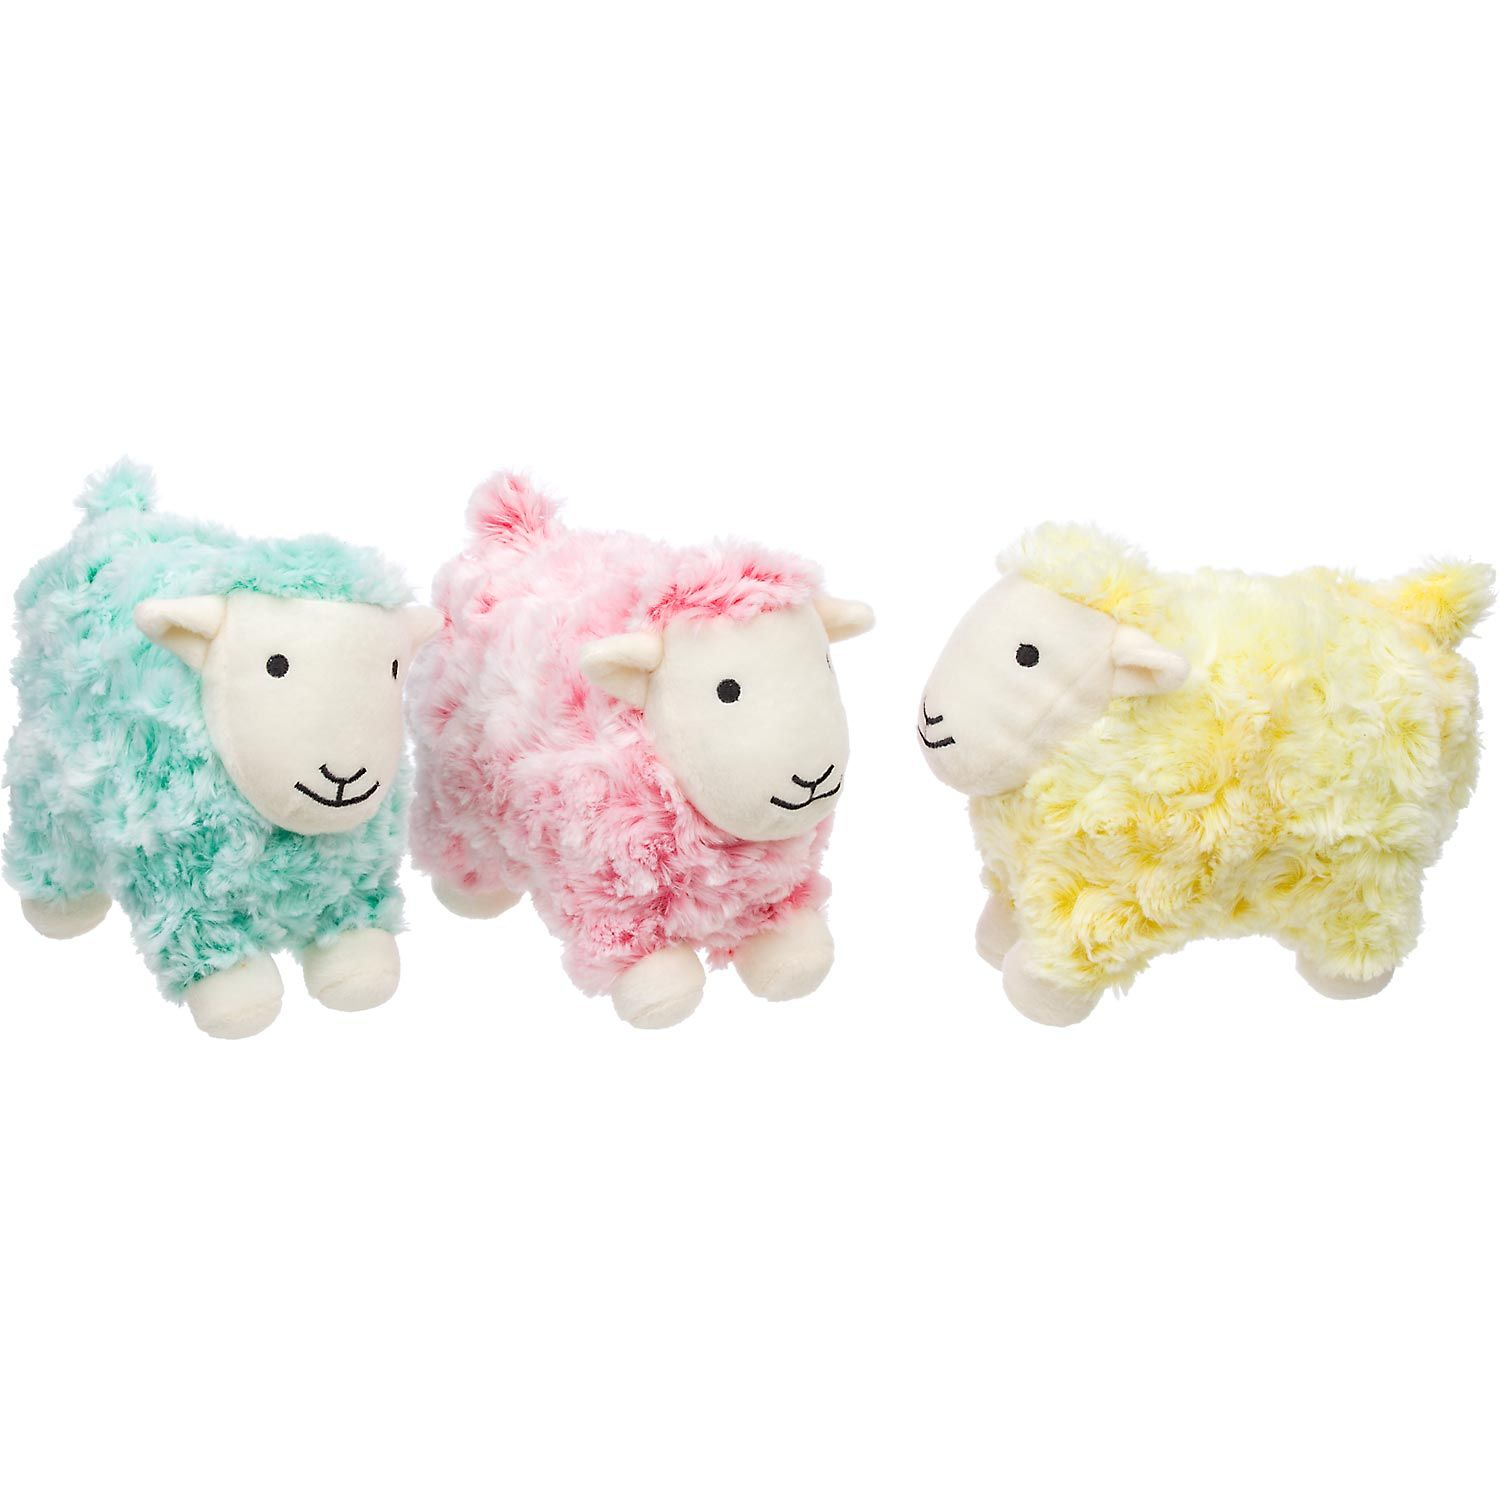 Petco Swirly Frosted Sheep Plush Dog Toy For Missy 3 Dog Toys